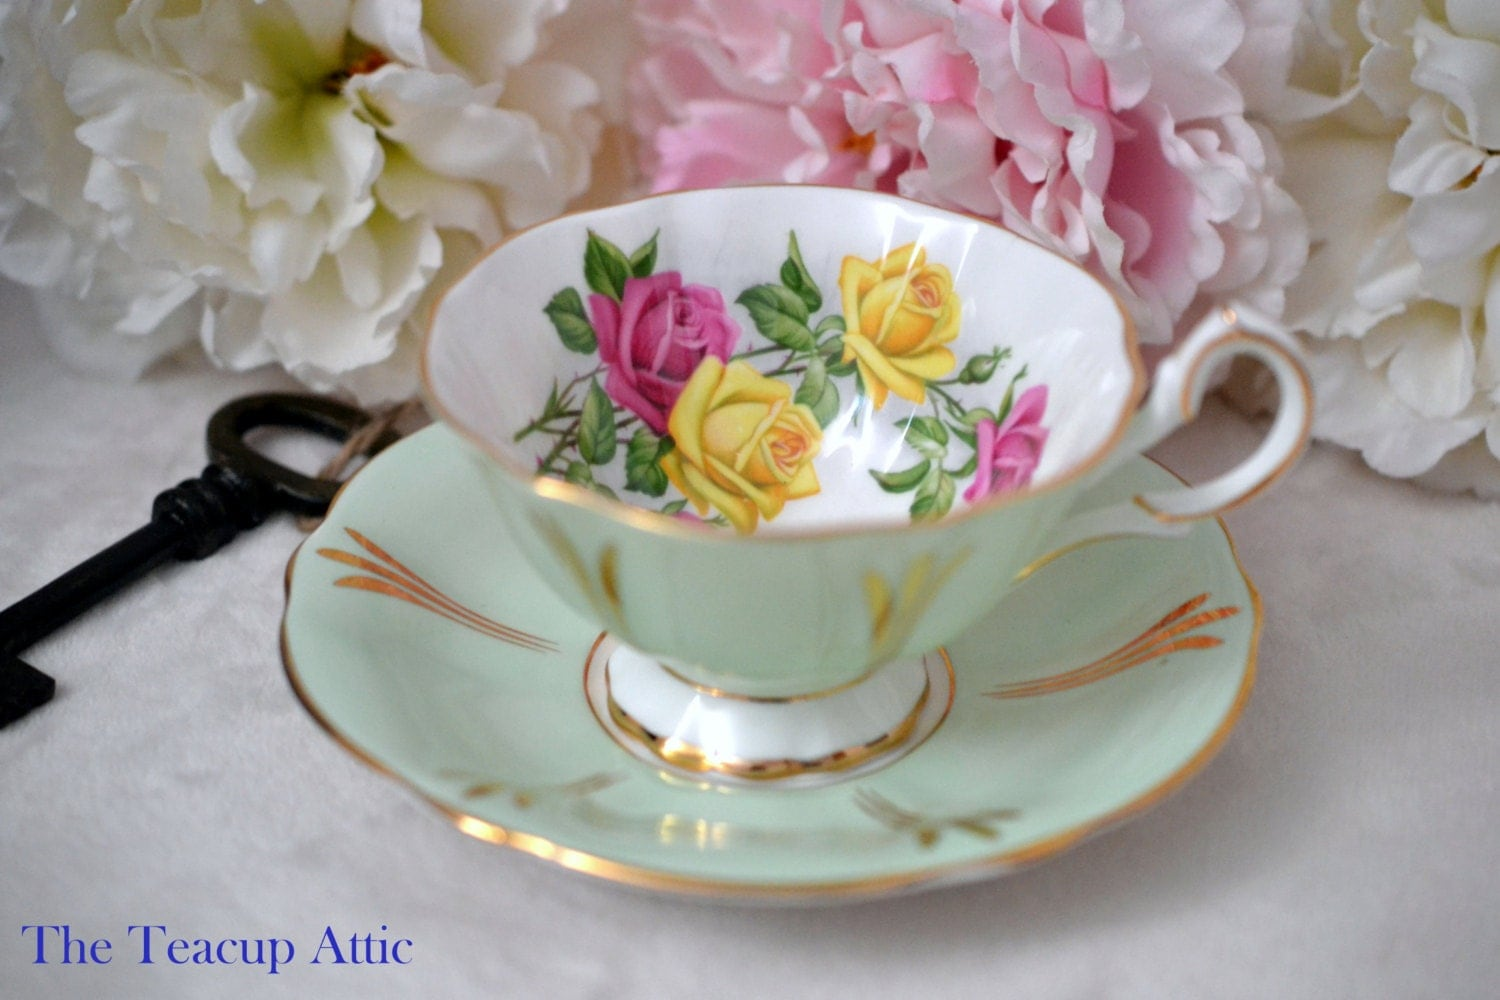 Queen Anne Pale Green Floral Teacup and Saucer Set, English Bone China Teacup And Saucer, ca.1950-